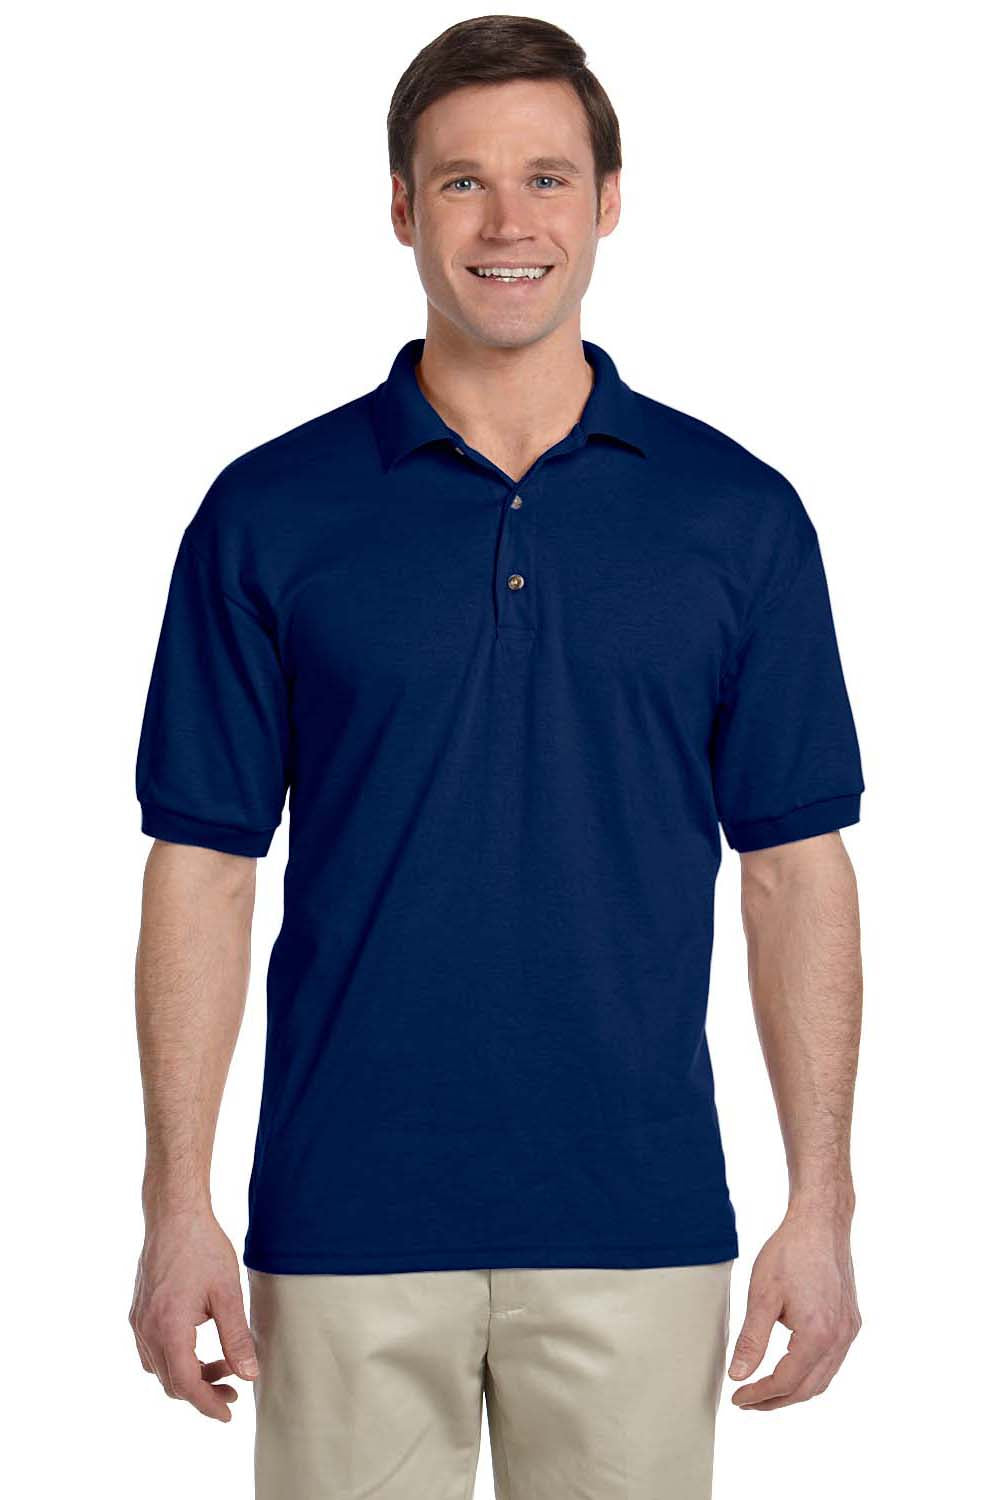 Gildan G880 Mens DryBlend Moisture Wicking Short Sleeve Polo Shirt Navy Blue Front